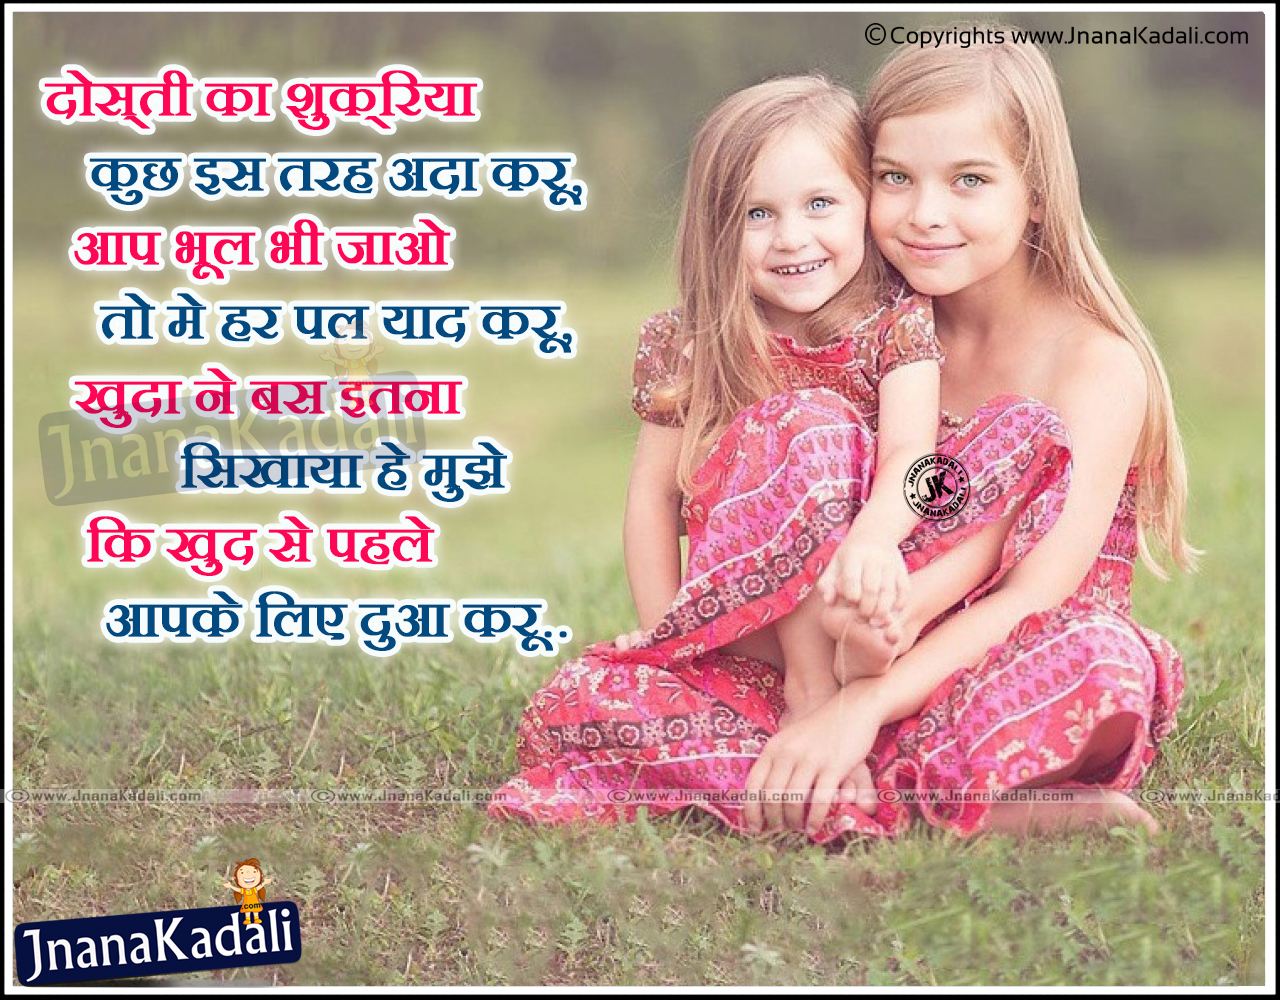 Here Is A Top Hindi Language Friendship Messages And Nice Words OnlineTop Telugu